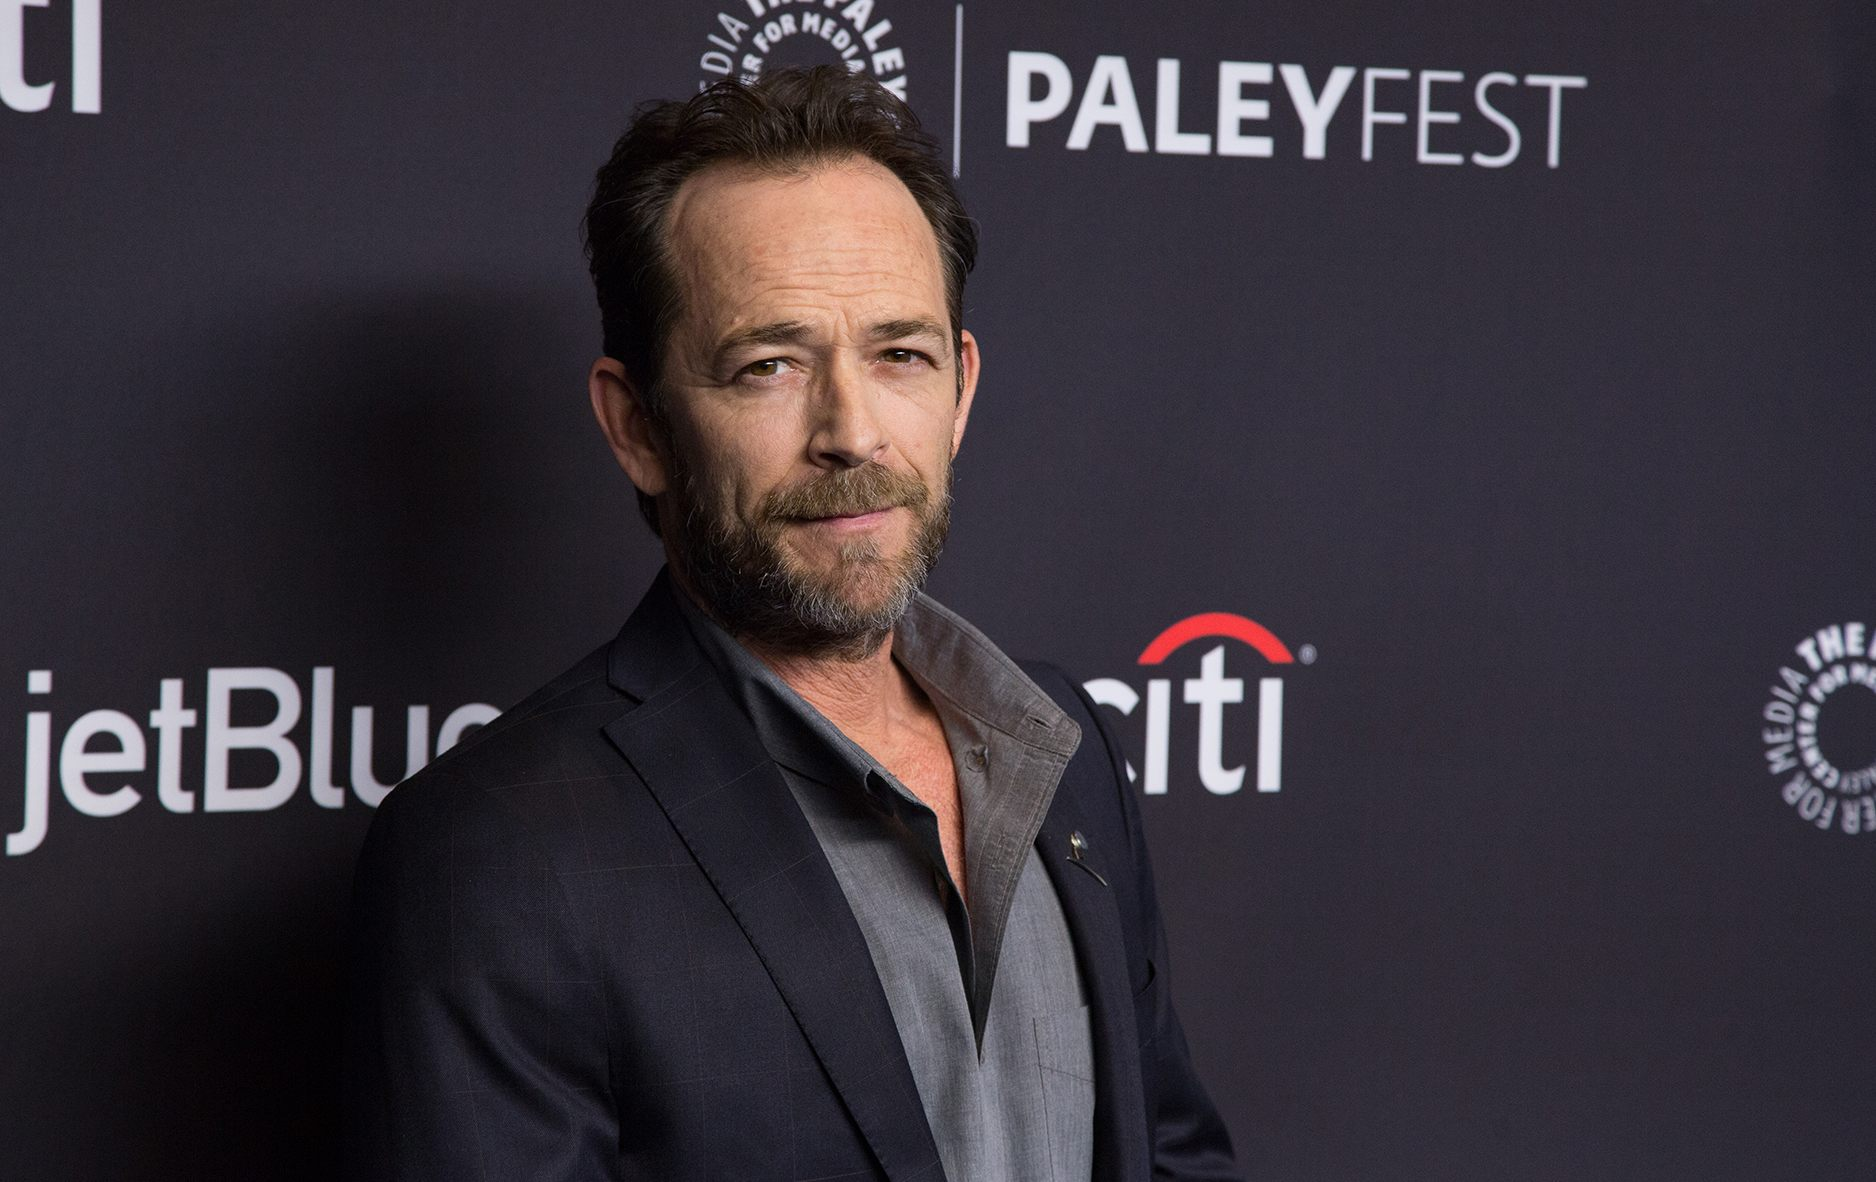 Luke Perry's son Jack pens emotional tribute to late actor: 'I'll miss you every day that I walk this earth'